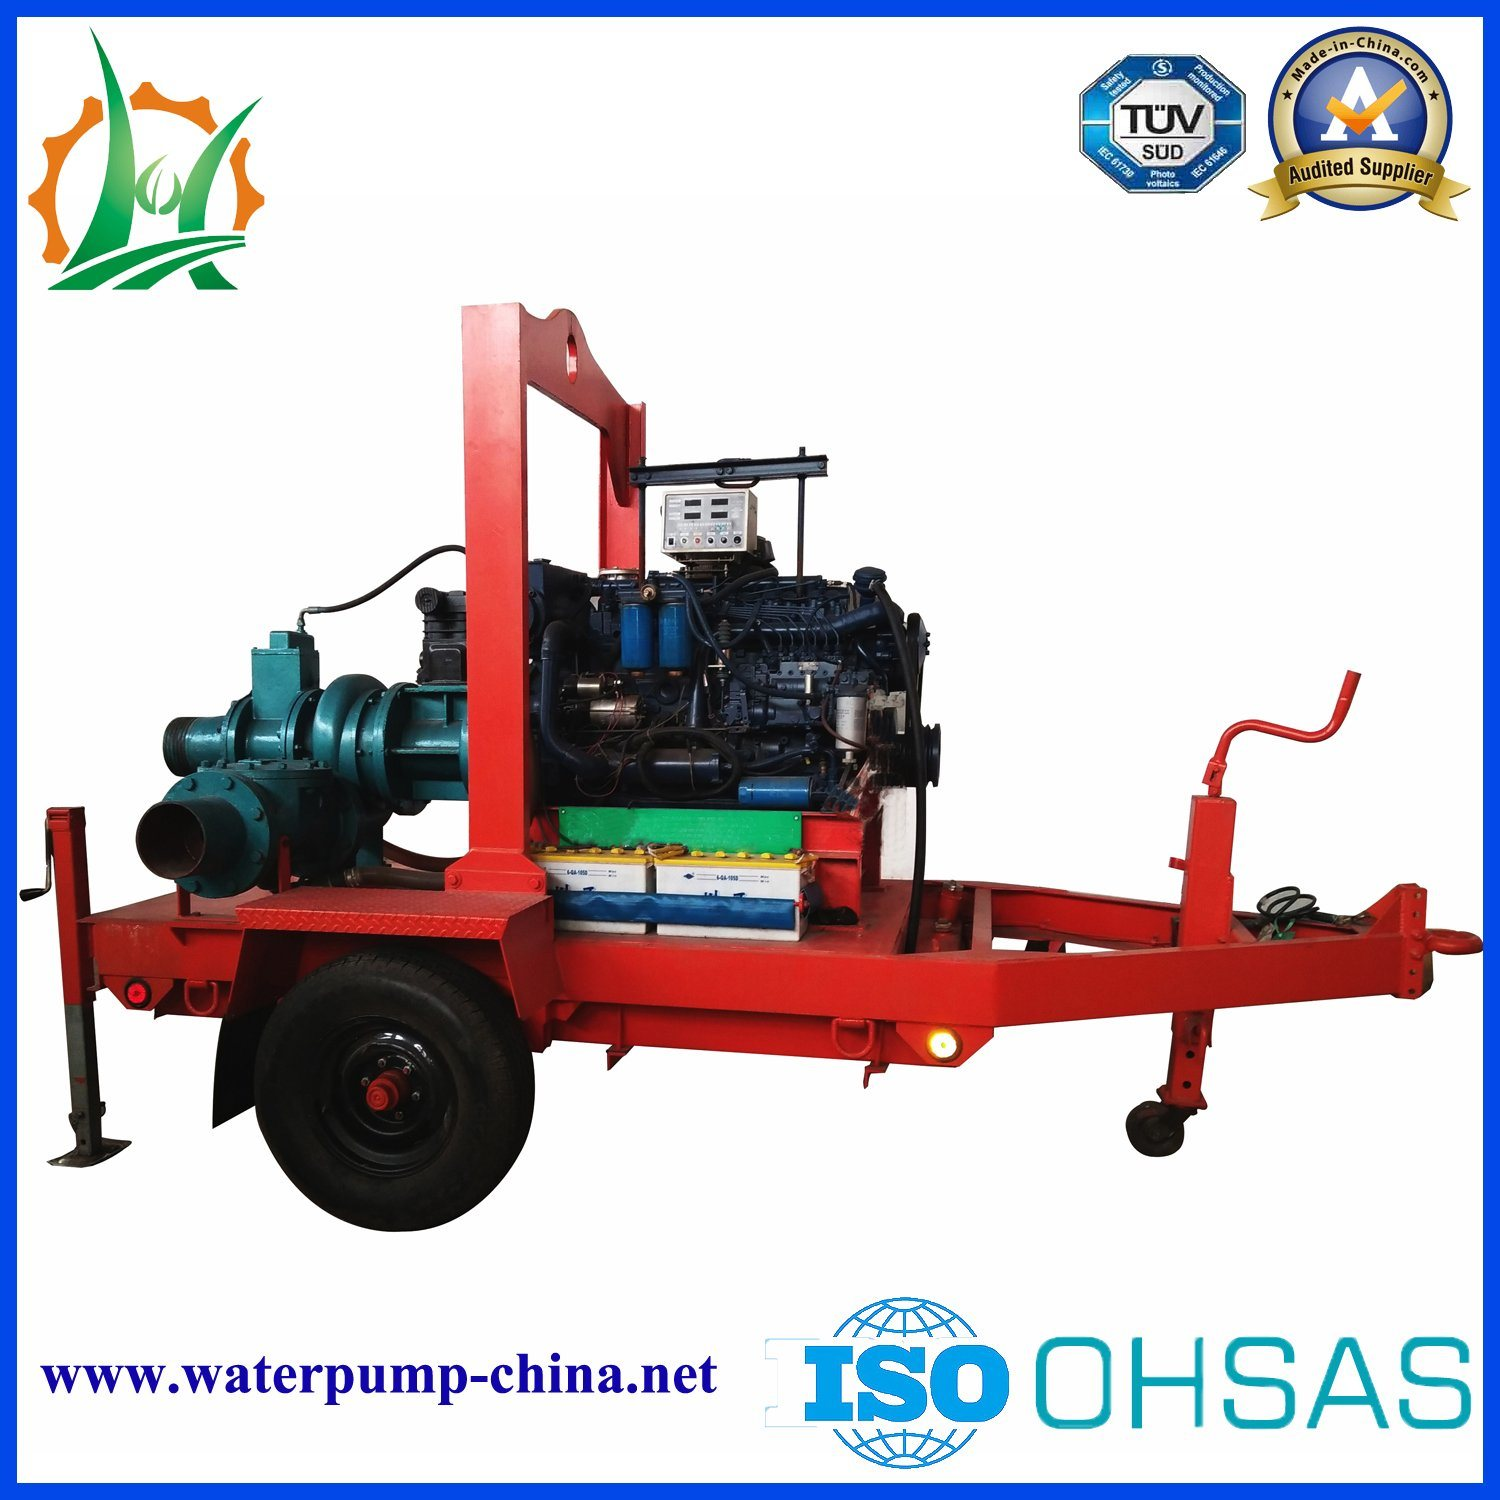 China Manufacturer Big Size Centrifugal Pump for Mine Metallugical System